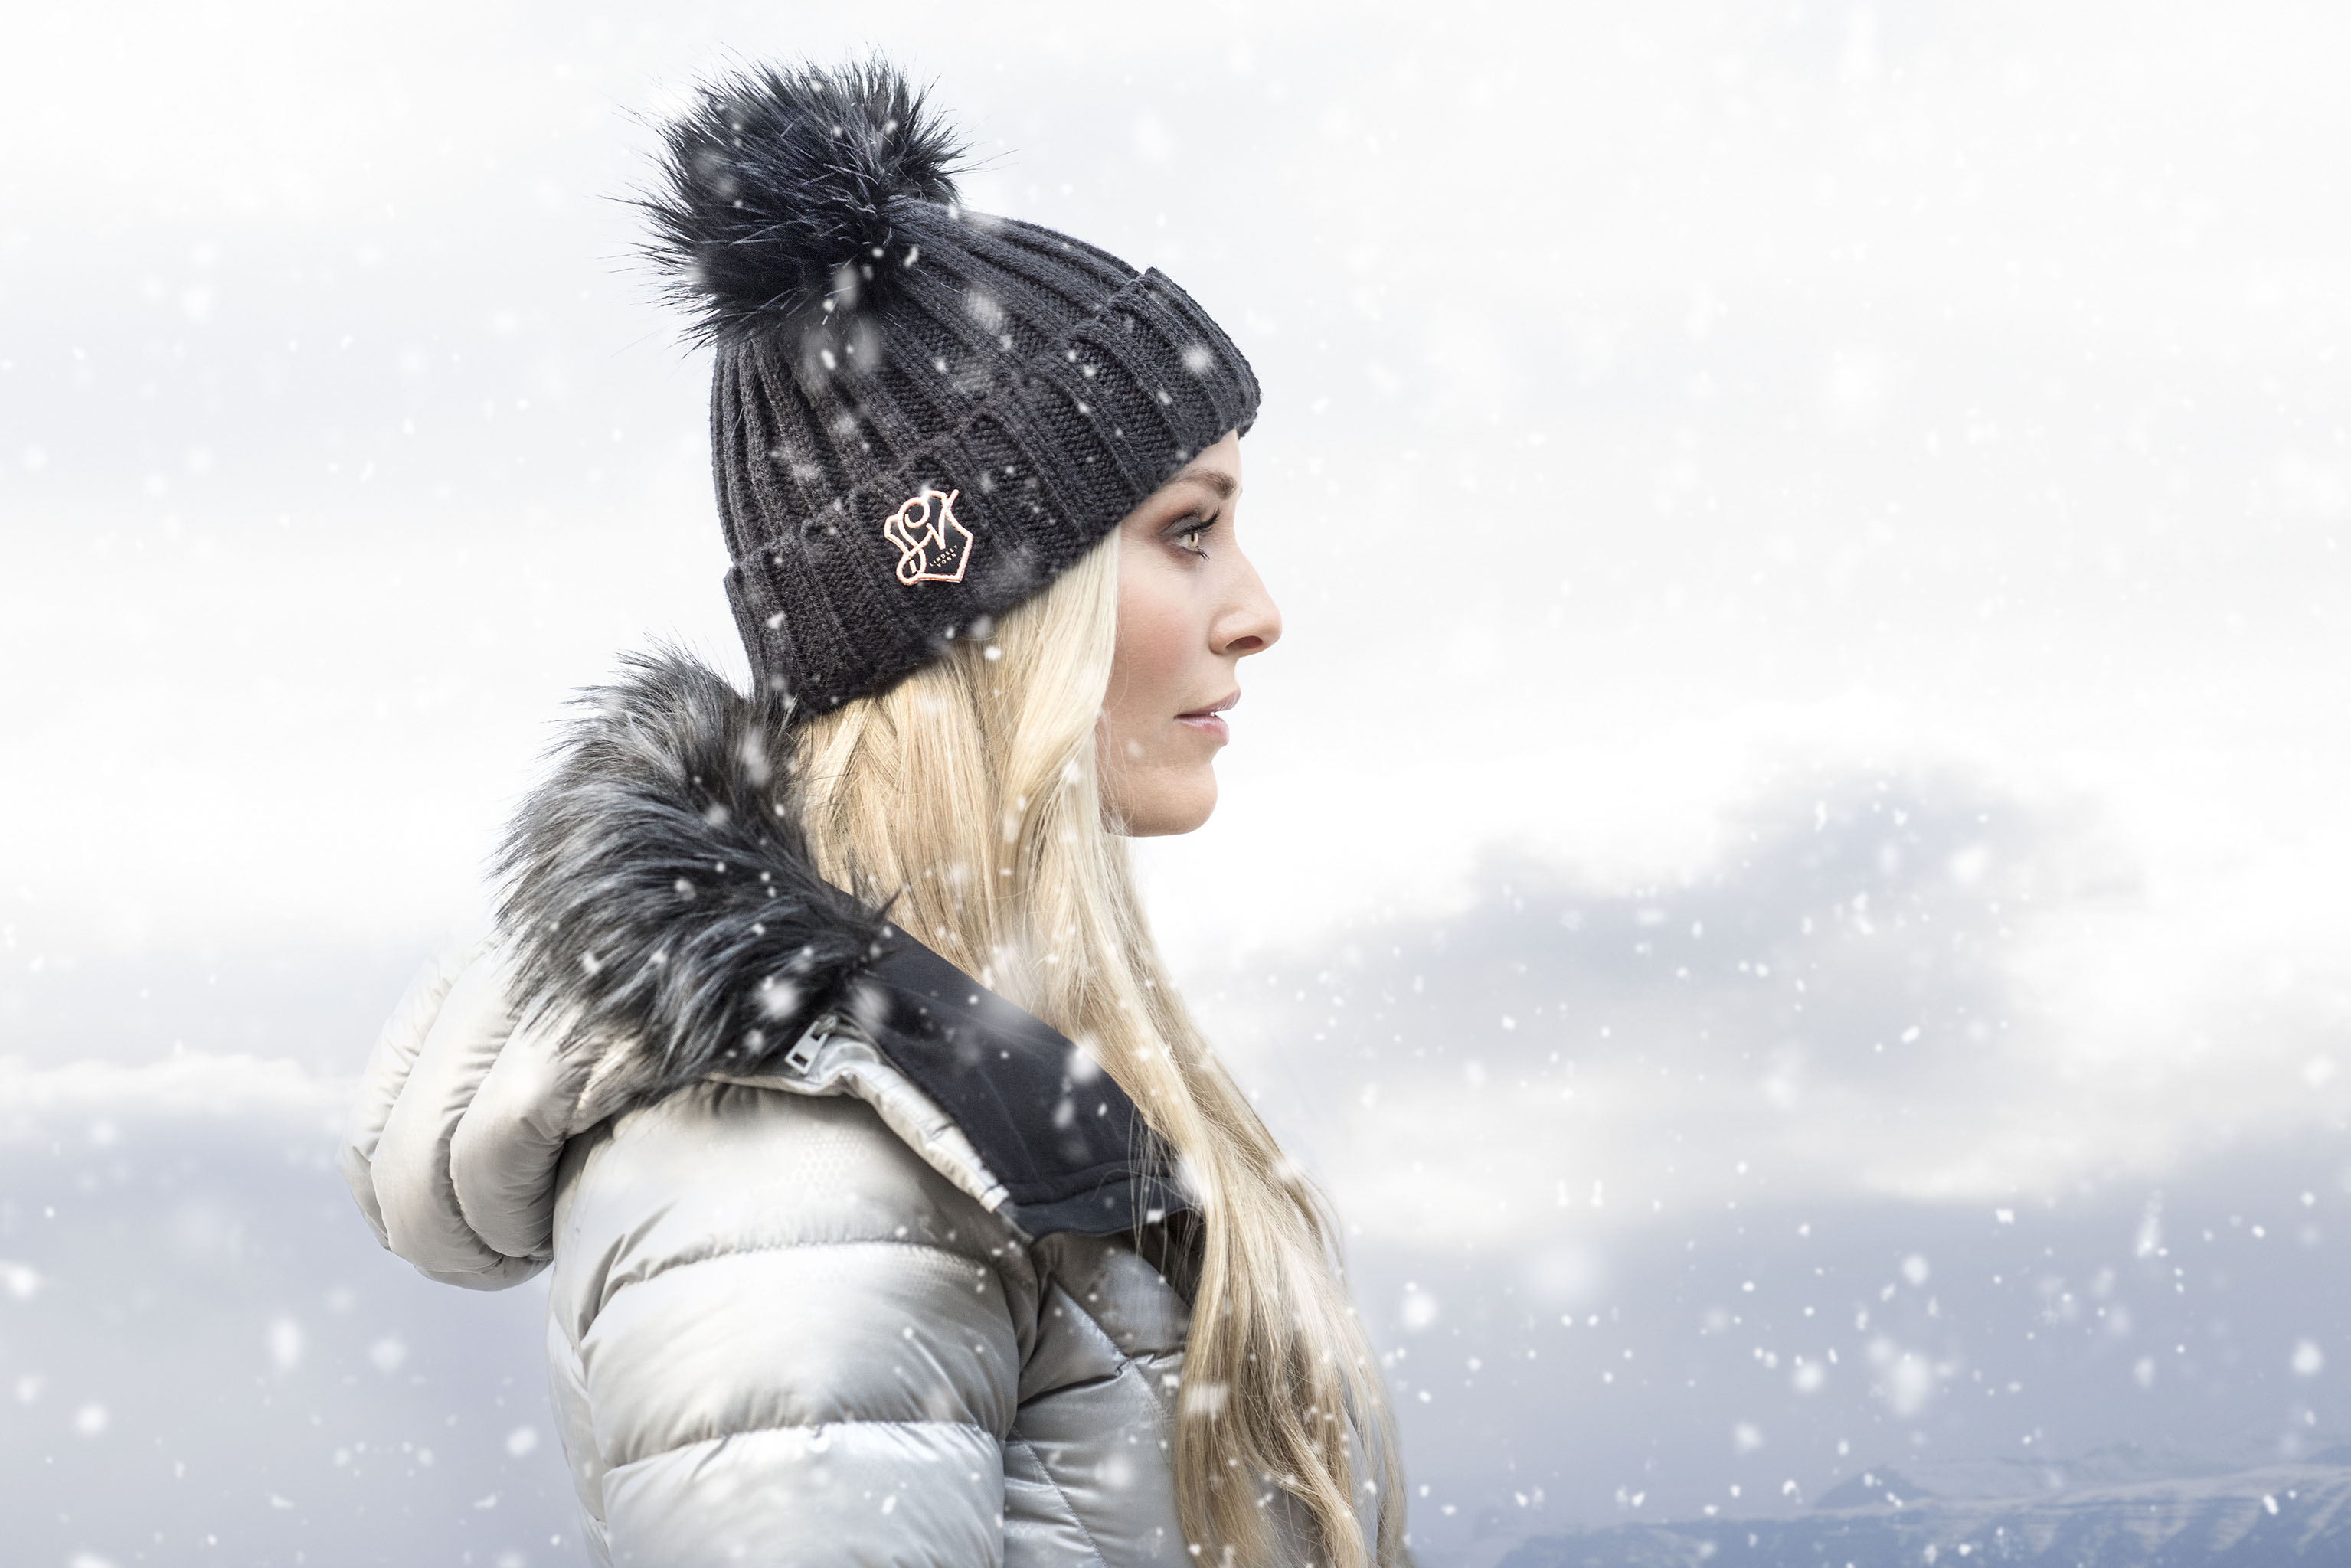 Lindsey Vonn wearing a look from her collection for Under Armour.